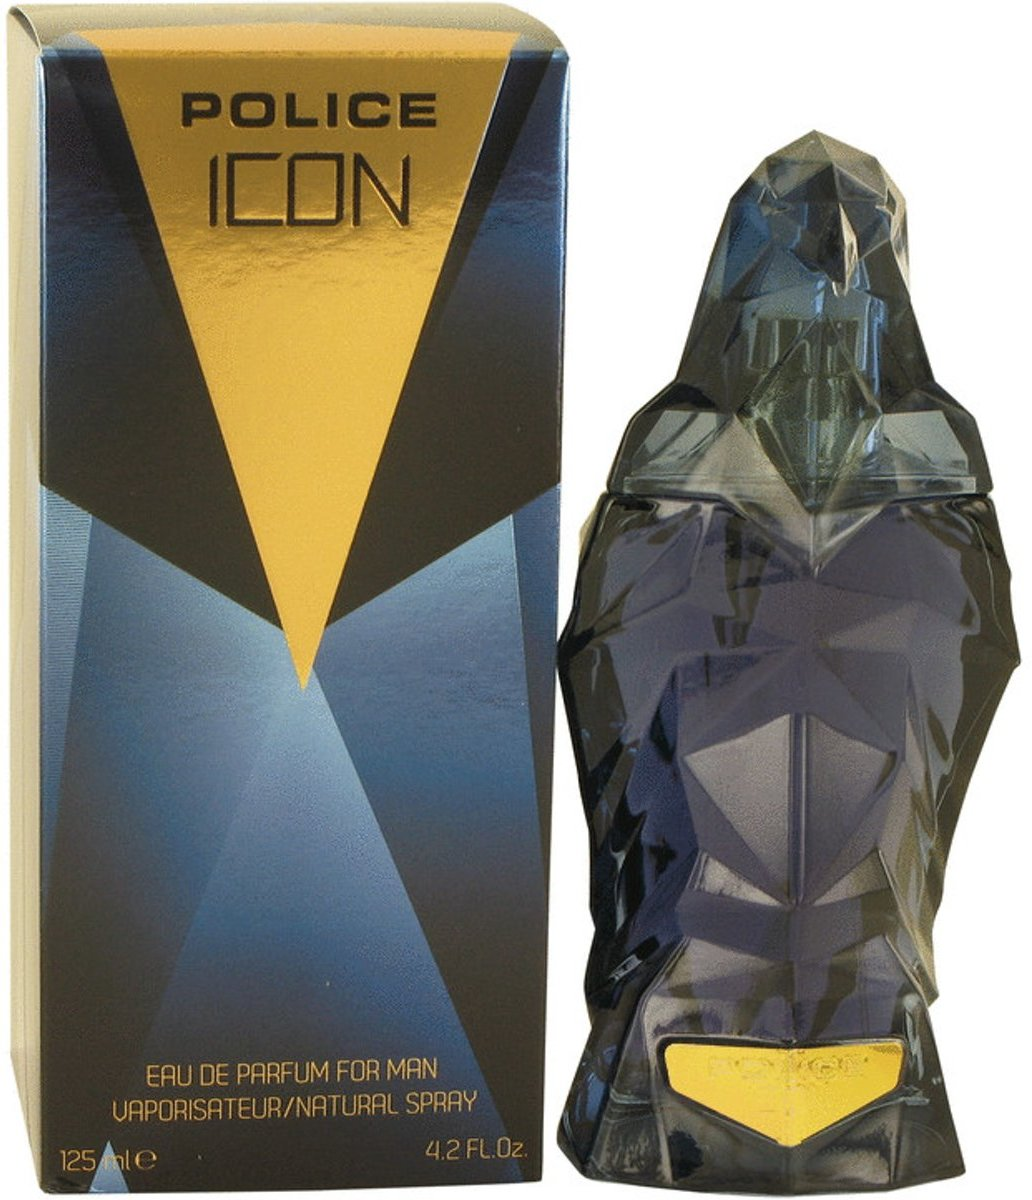 Police Icon For Man Edp Spray 125 ml